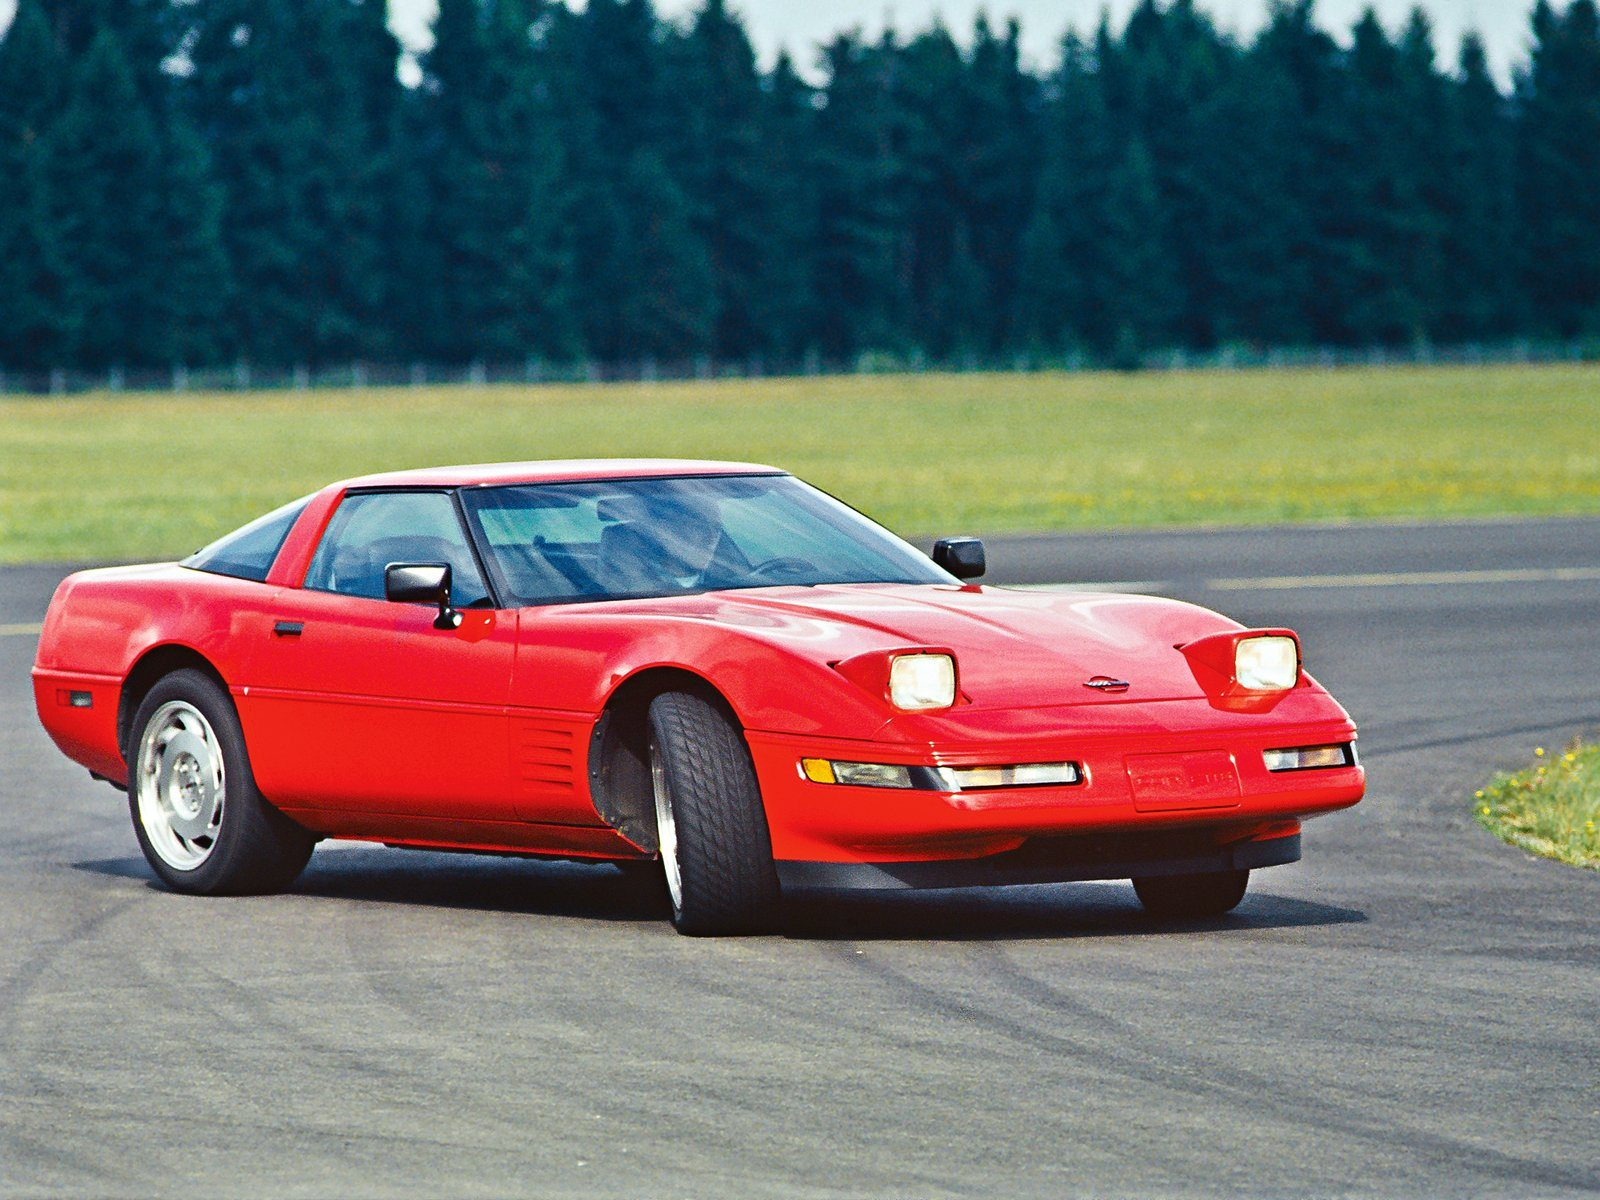 A 1991 Red ZR-1 being driven the way it supposed to be driven, sideways.